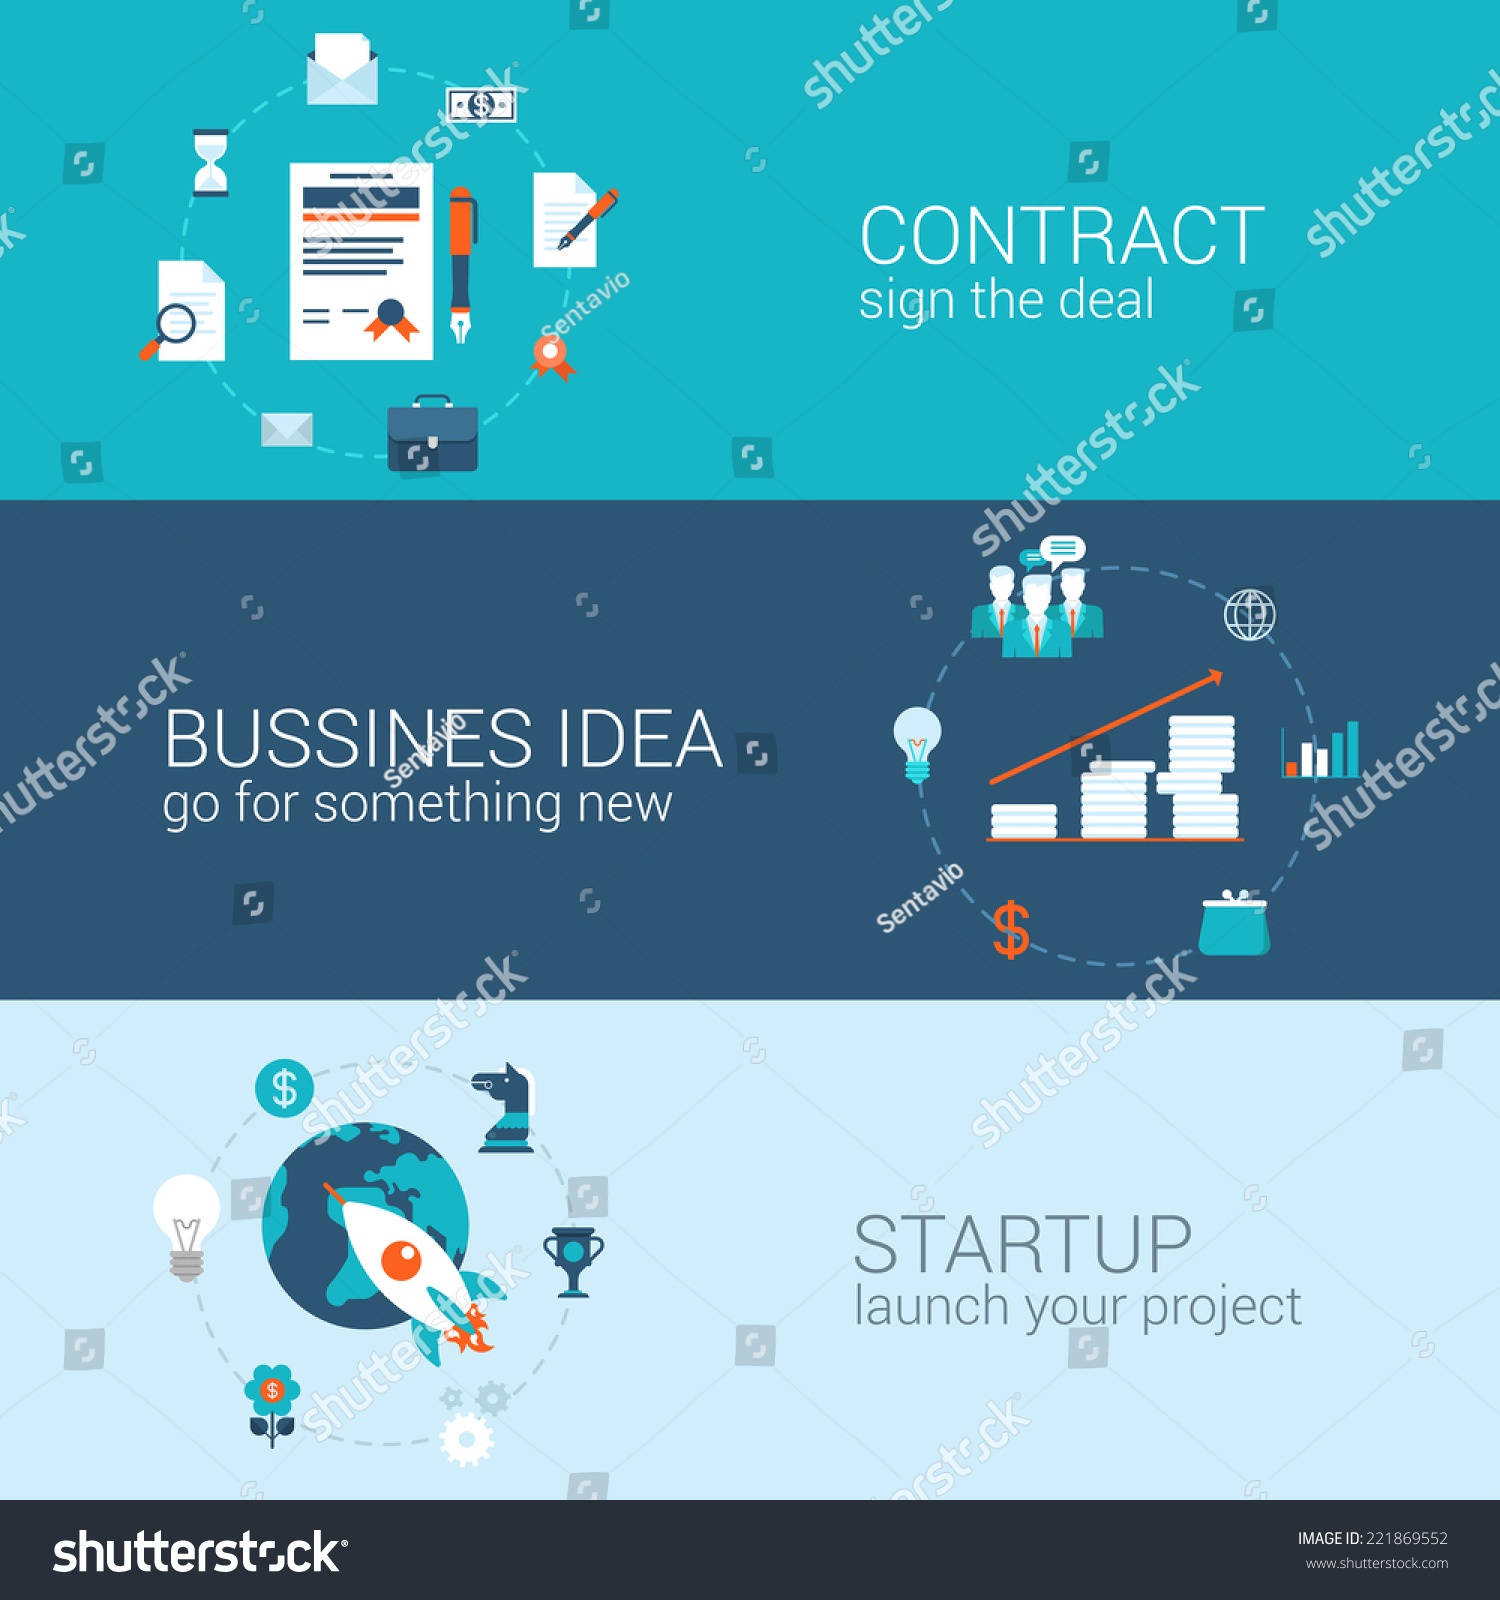 business contract idea startup concept flat icons banners template set sign deal start up launch. Black Bedroom Furniture Sets. Home Design Ideas